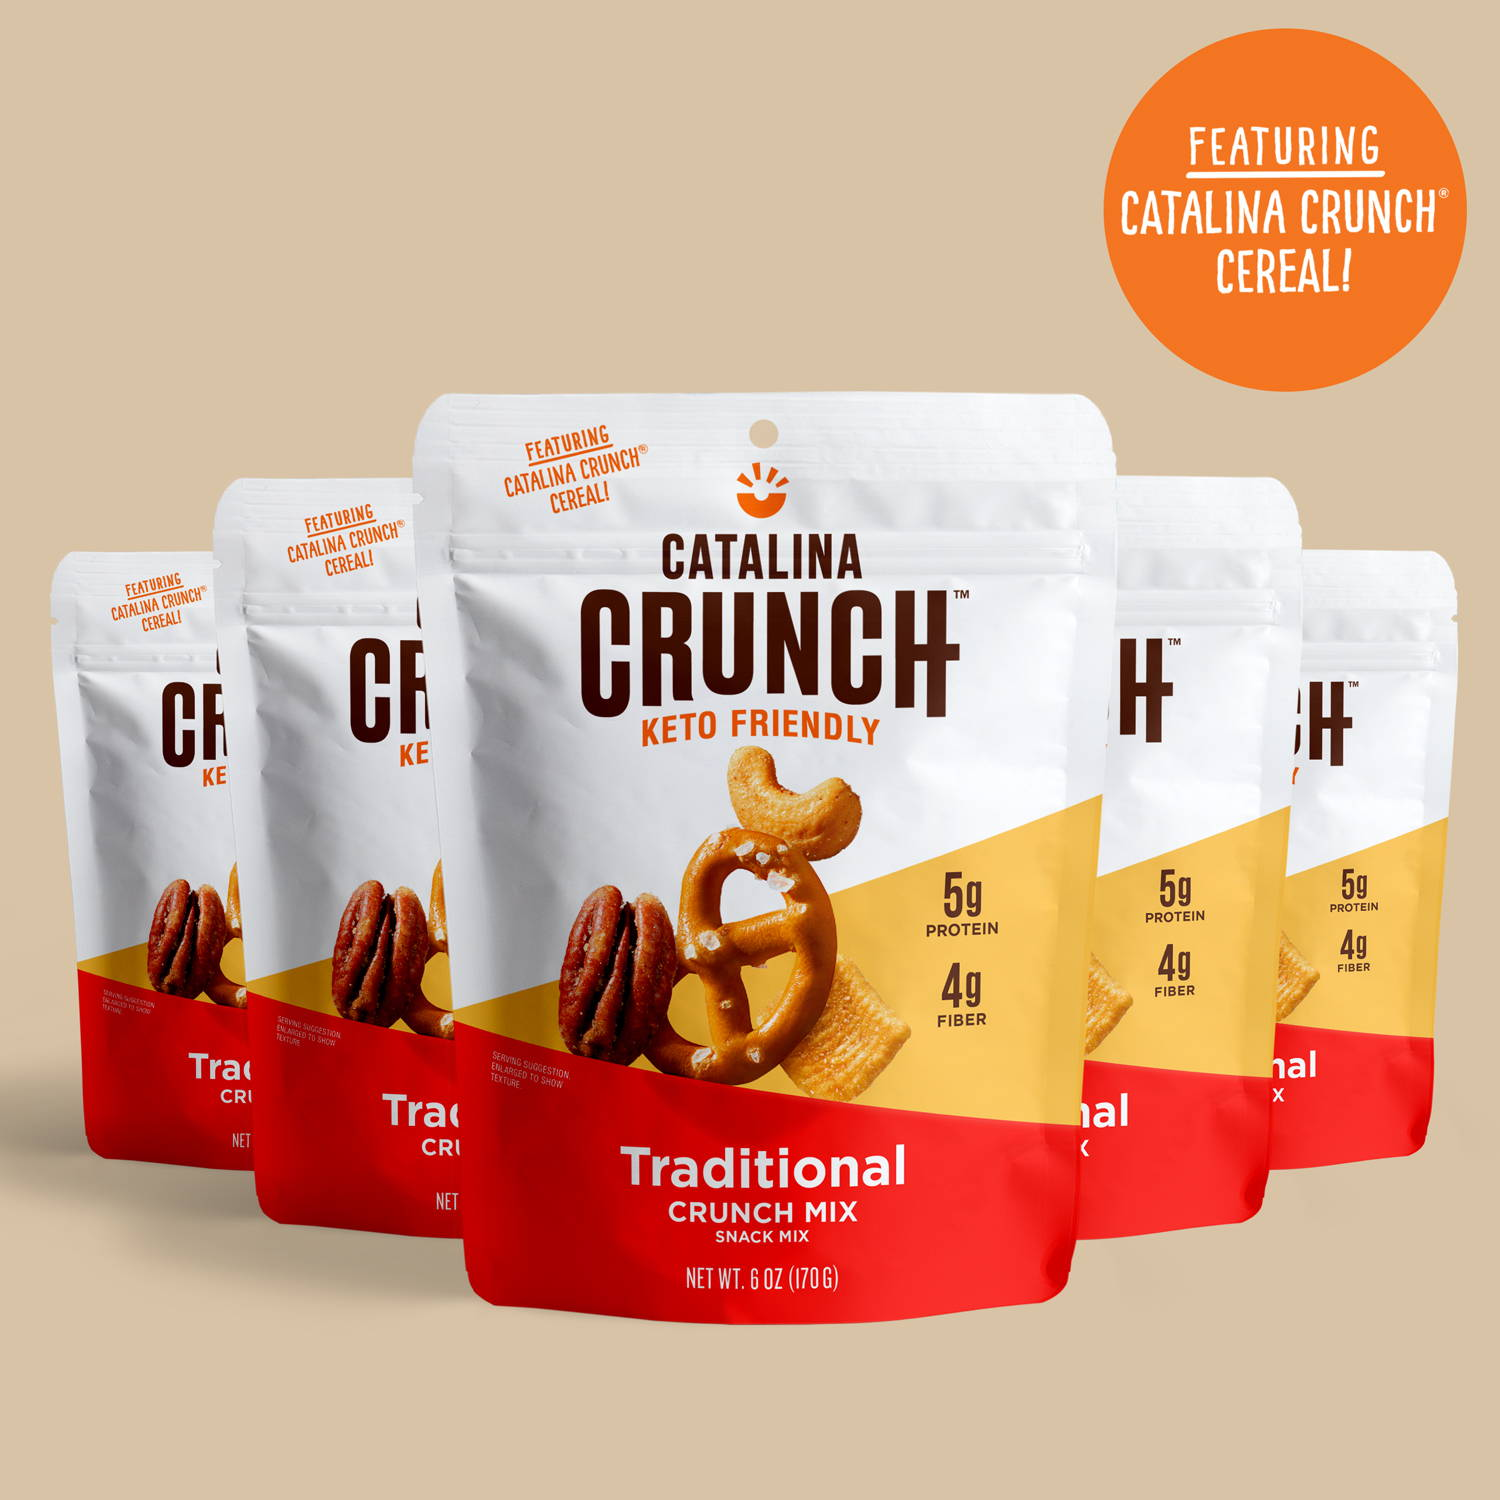 Traditional Keto Snack Mix - Catalina Crunch